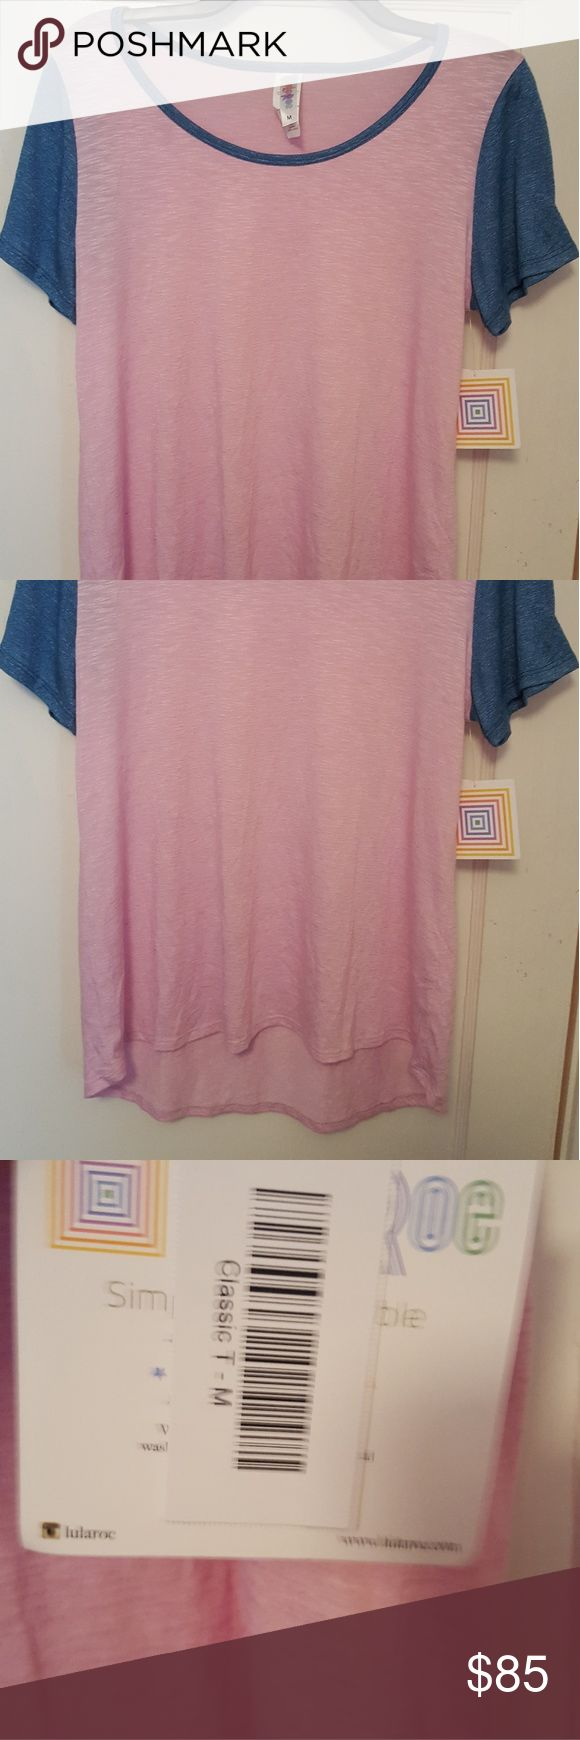 NWT UNICORN LULAROE CLASSIC T top M NWT Lularoe Classic T Top size Medium. Features lightweight fabric, Cotton Candy pink and blue contrast piping/sleeves and incredibly figure flattering cut. Lularoe is known for their highly versatile and insanely silhouette-flattering pieces. Google the multiple ways to style these pieces- they are the PERFECT vacation item when traveling light! Each piece is unique. Any questions please feel free to ask :) I also offer combined shipping discounts on…